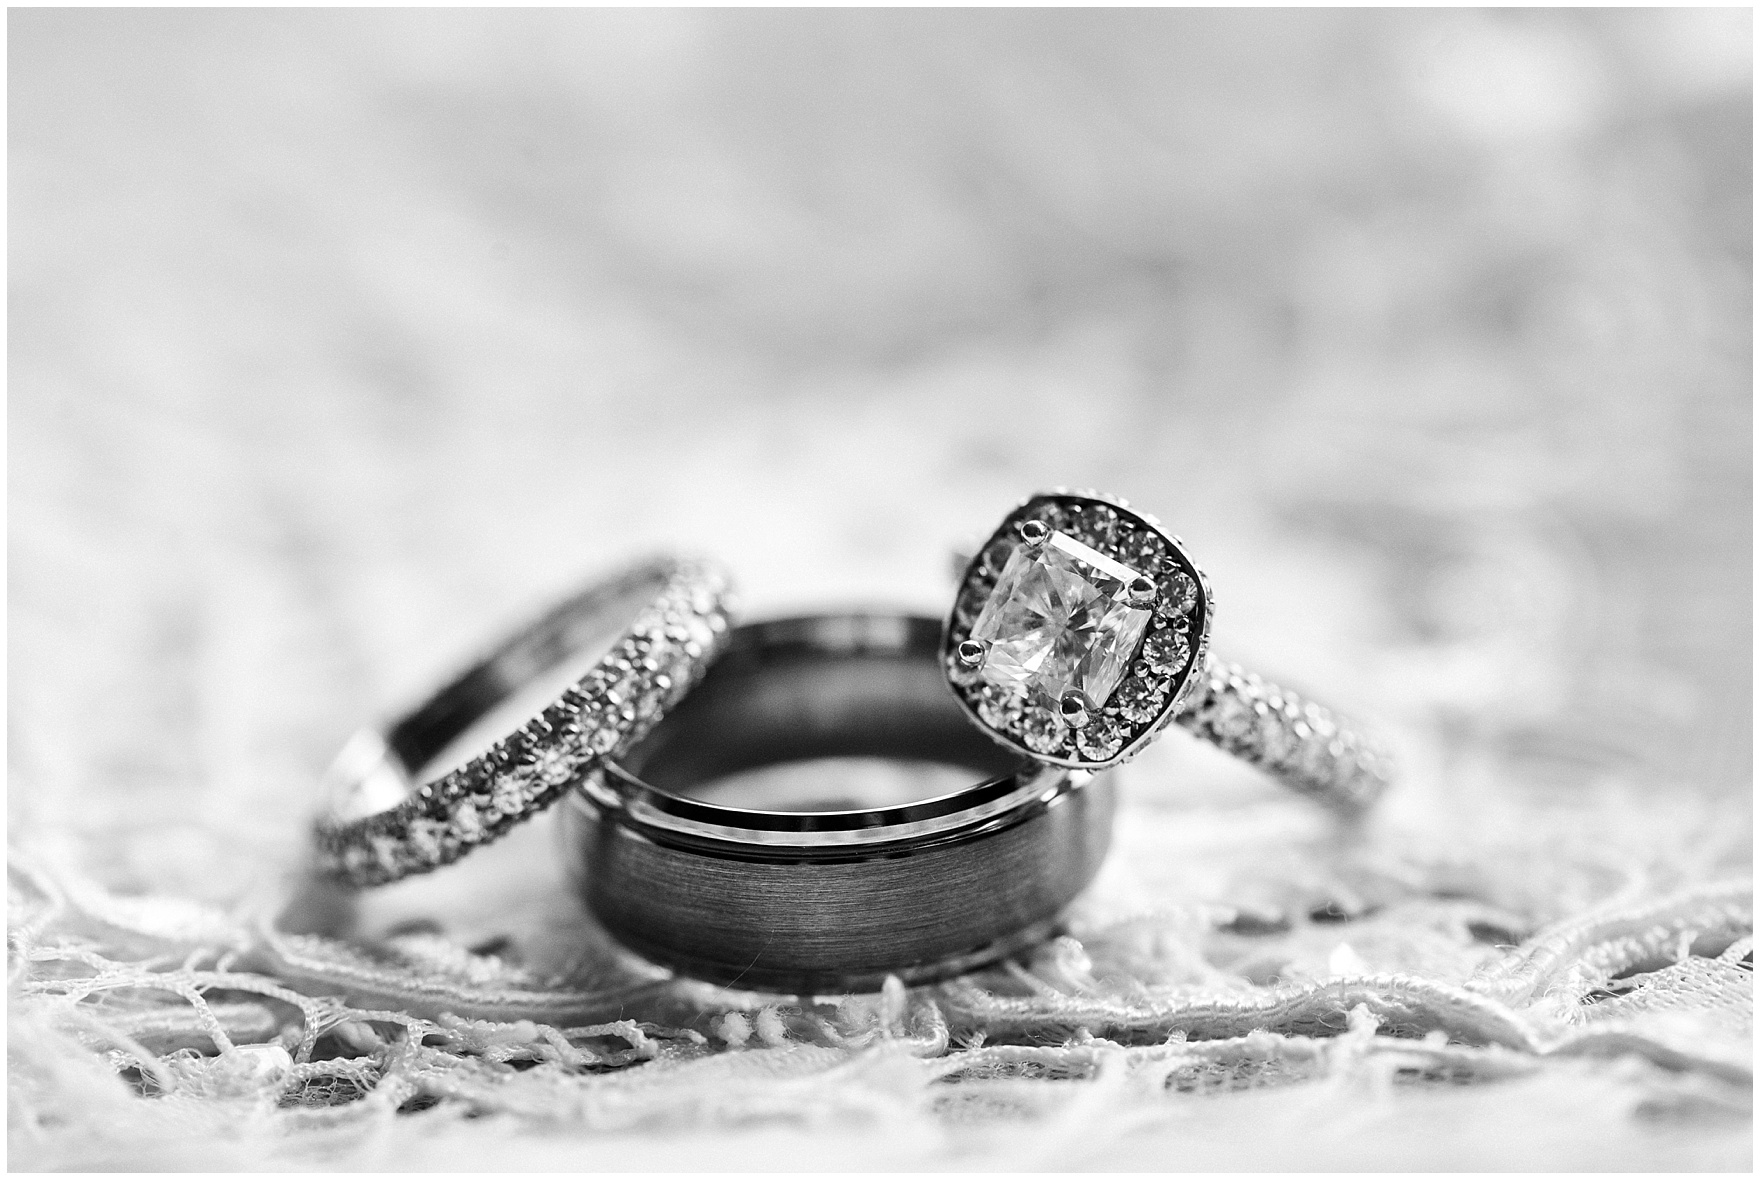 Detail of the engagement ring and wedding bands for a Hotel Arista Naperville wedding.